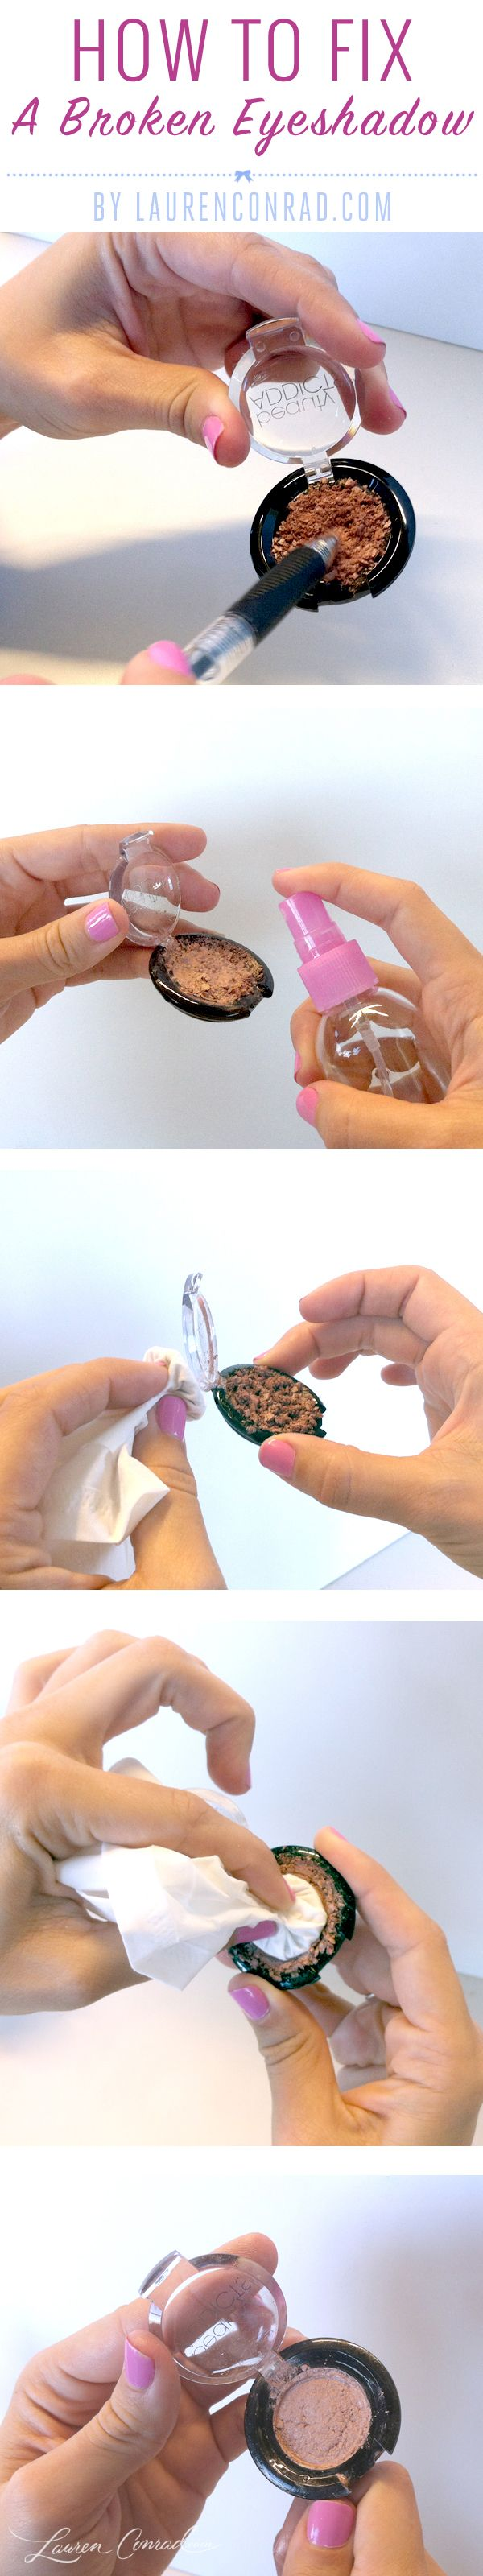 How to Fix a Smashed Eyeshadow